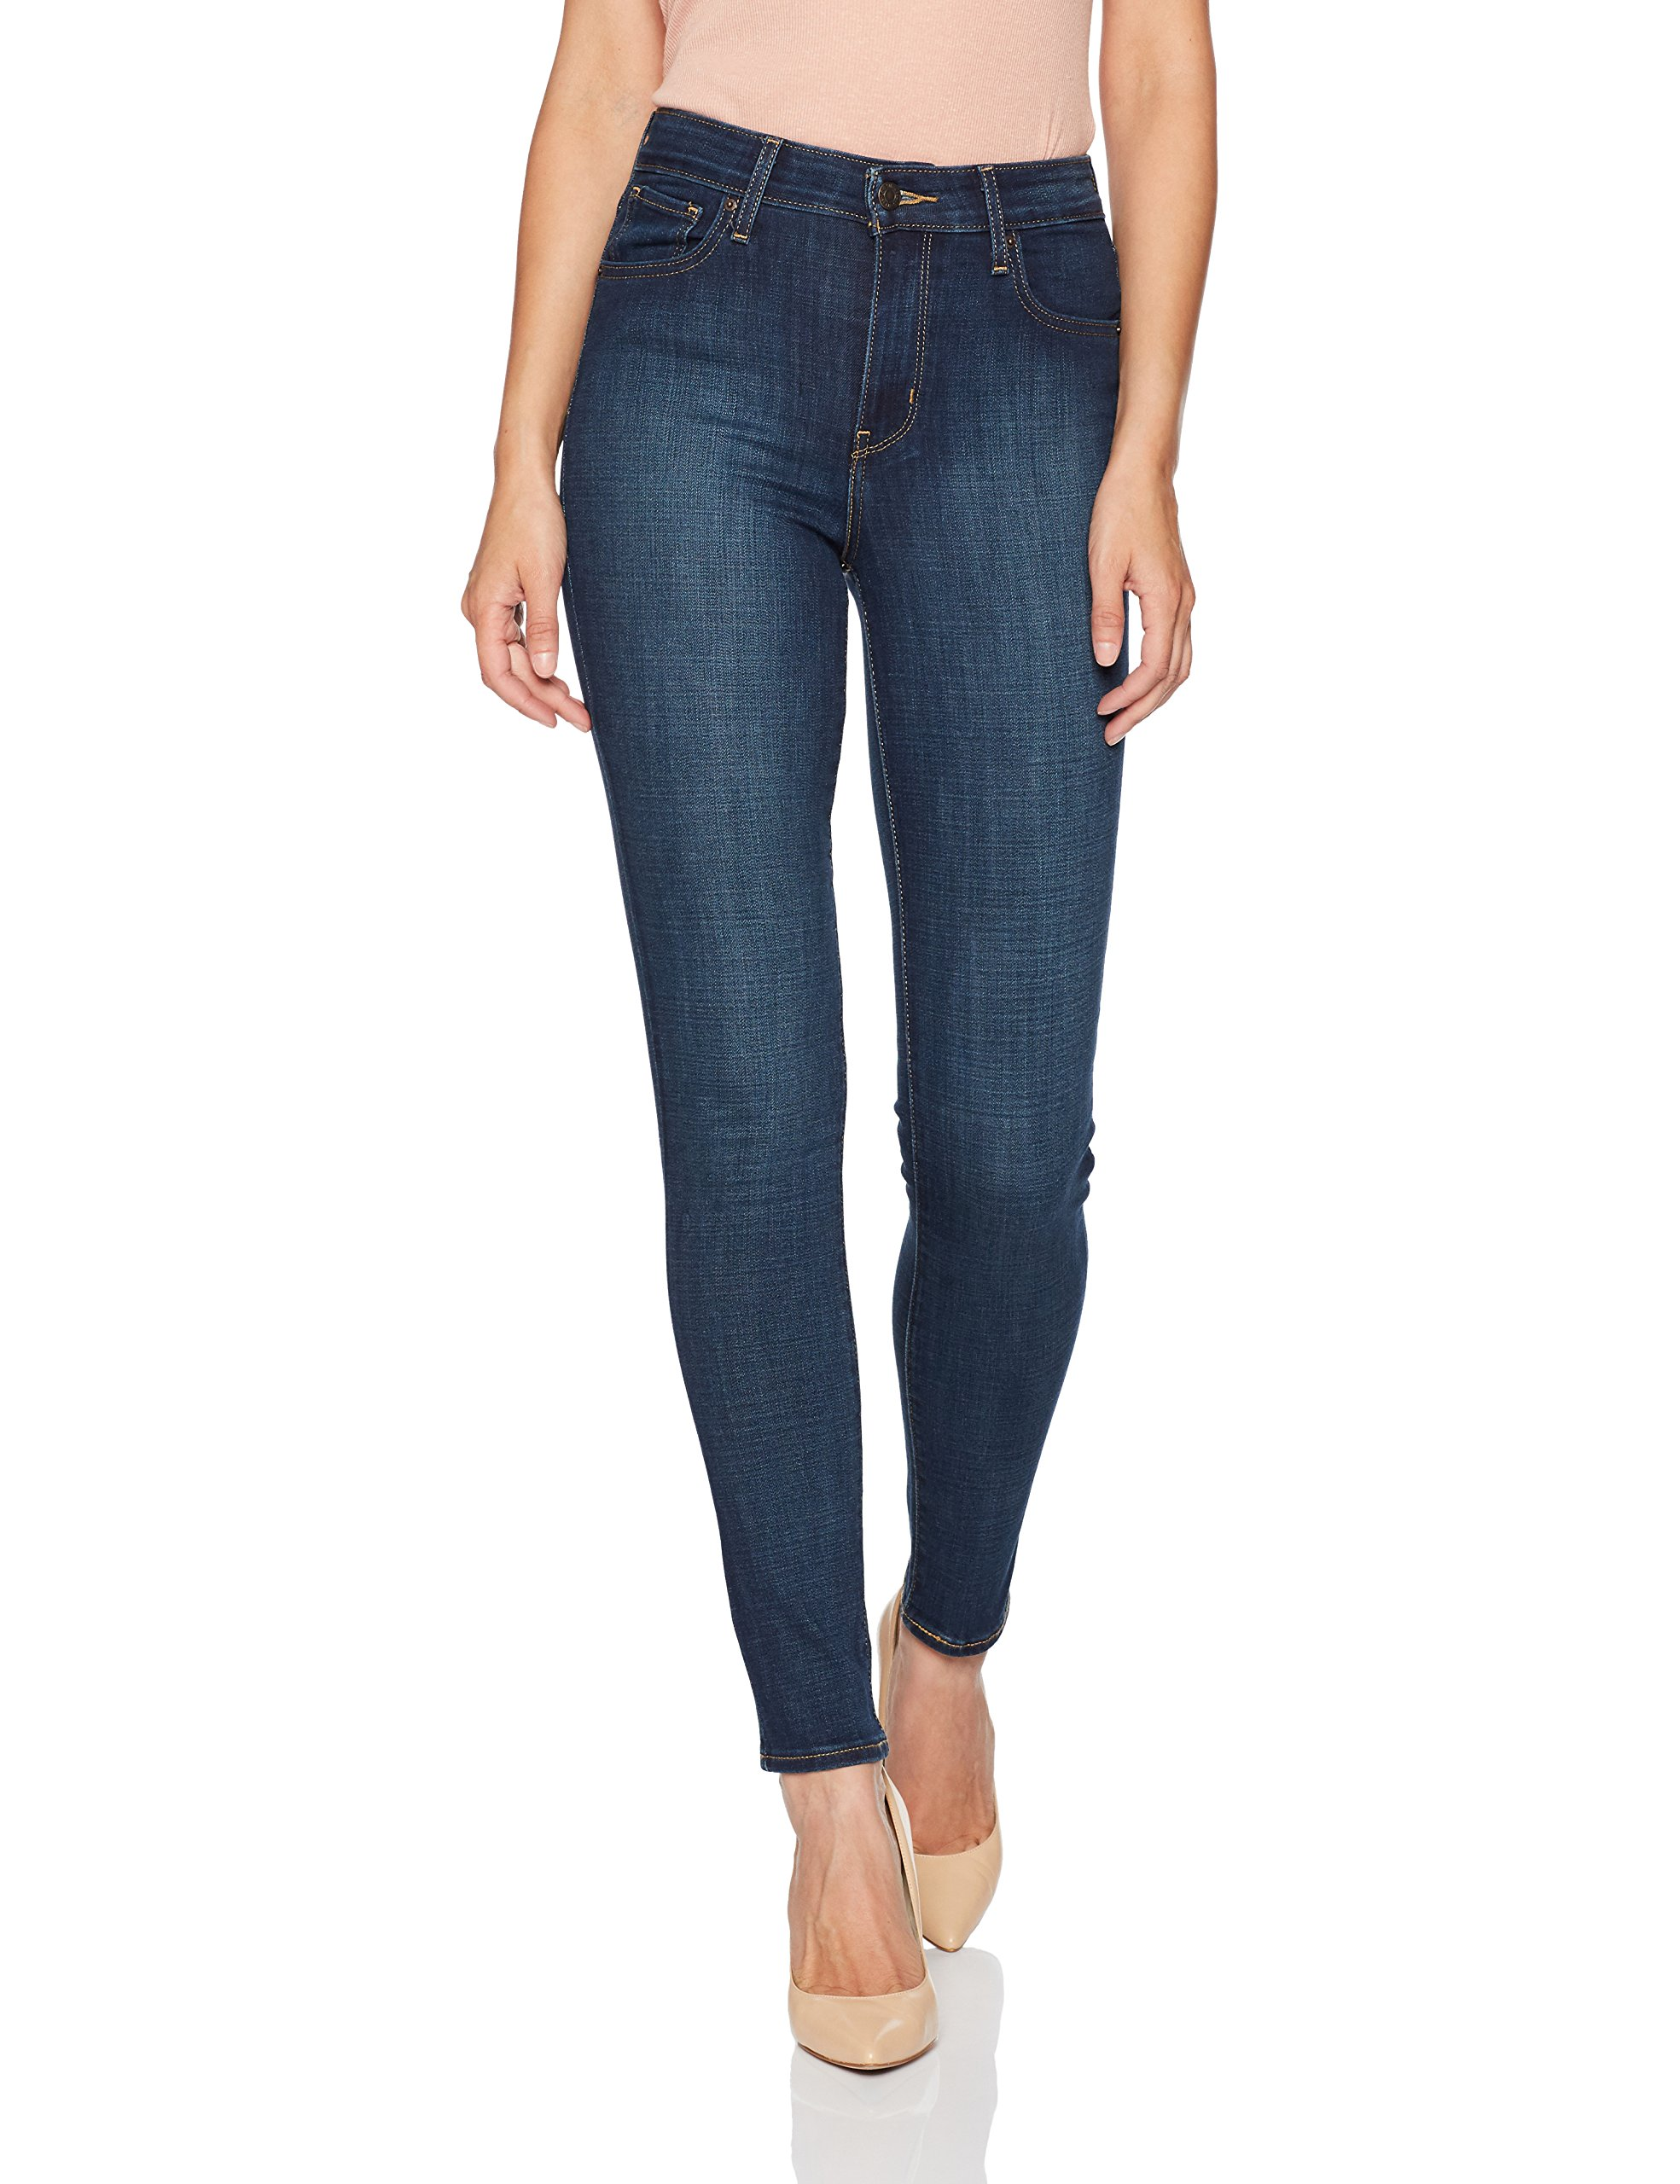 Levi's Women's 721 High Rise Skinny Jeans,  Blue Story,  30 (US 10) R by Levi's